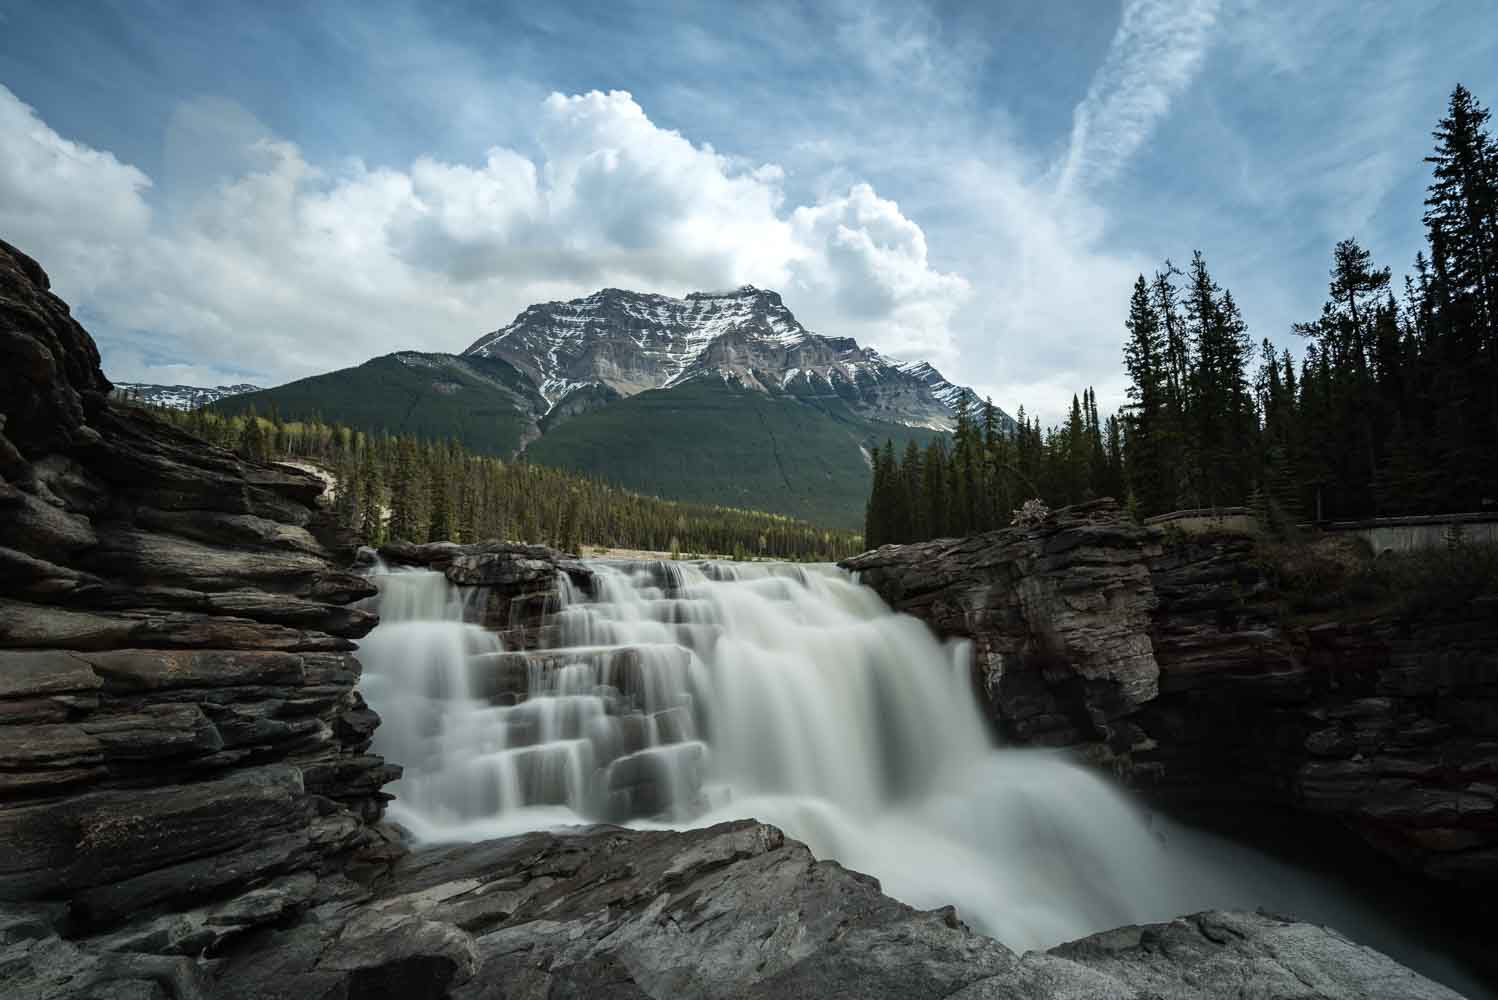 A long shutter speed makes the water at Athabasca Falls smooth and steady beneath Mt Kirkeslin in Jasper, Alberta